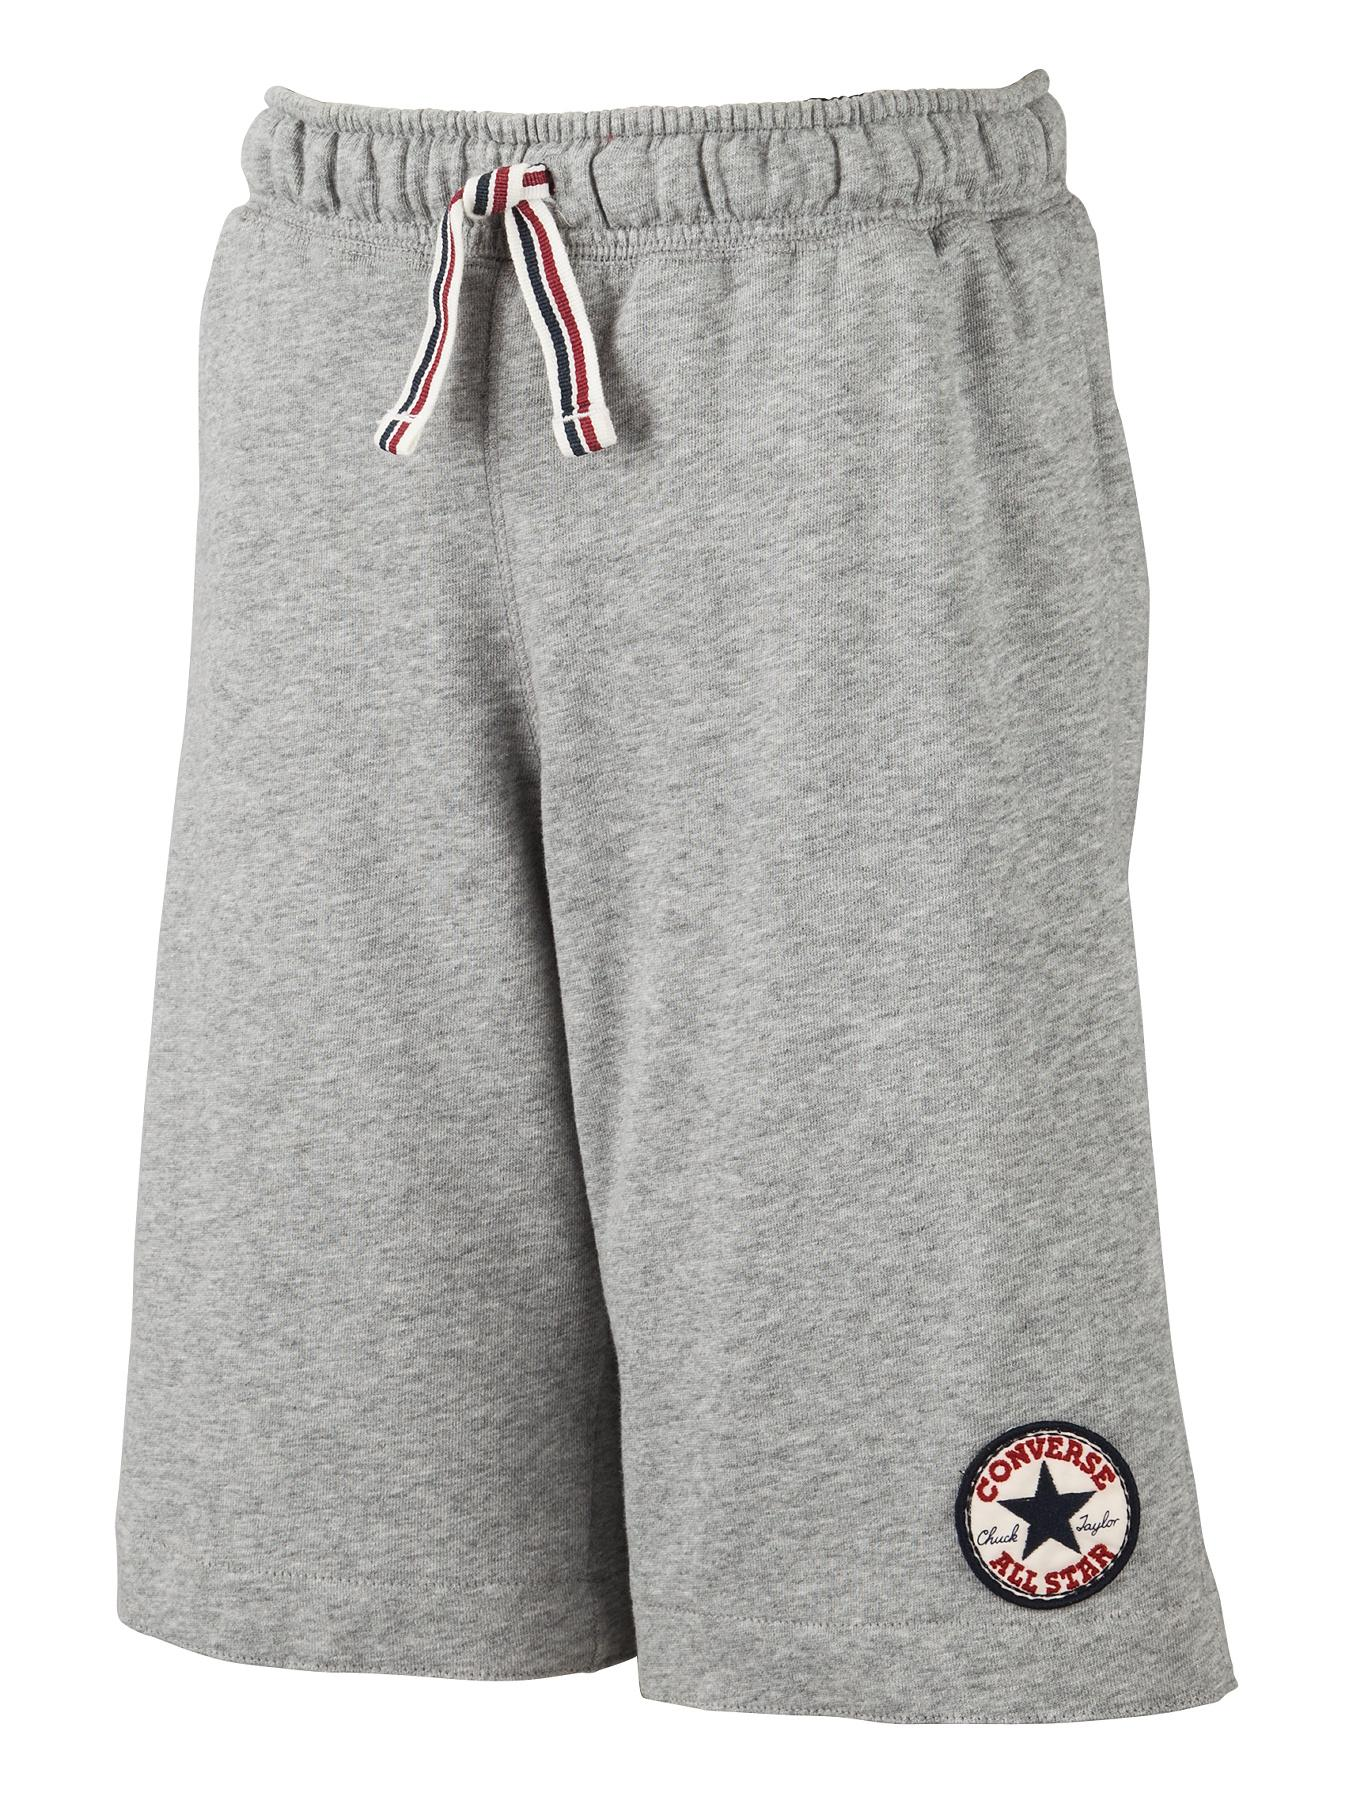 Youth Boys Chuck Patch Shorts, Grey